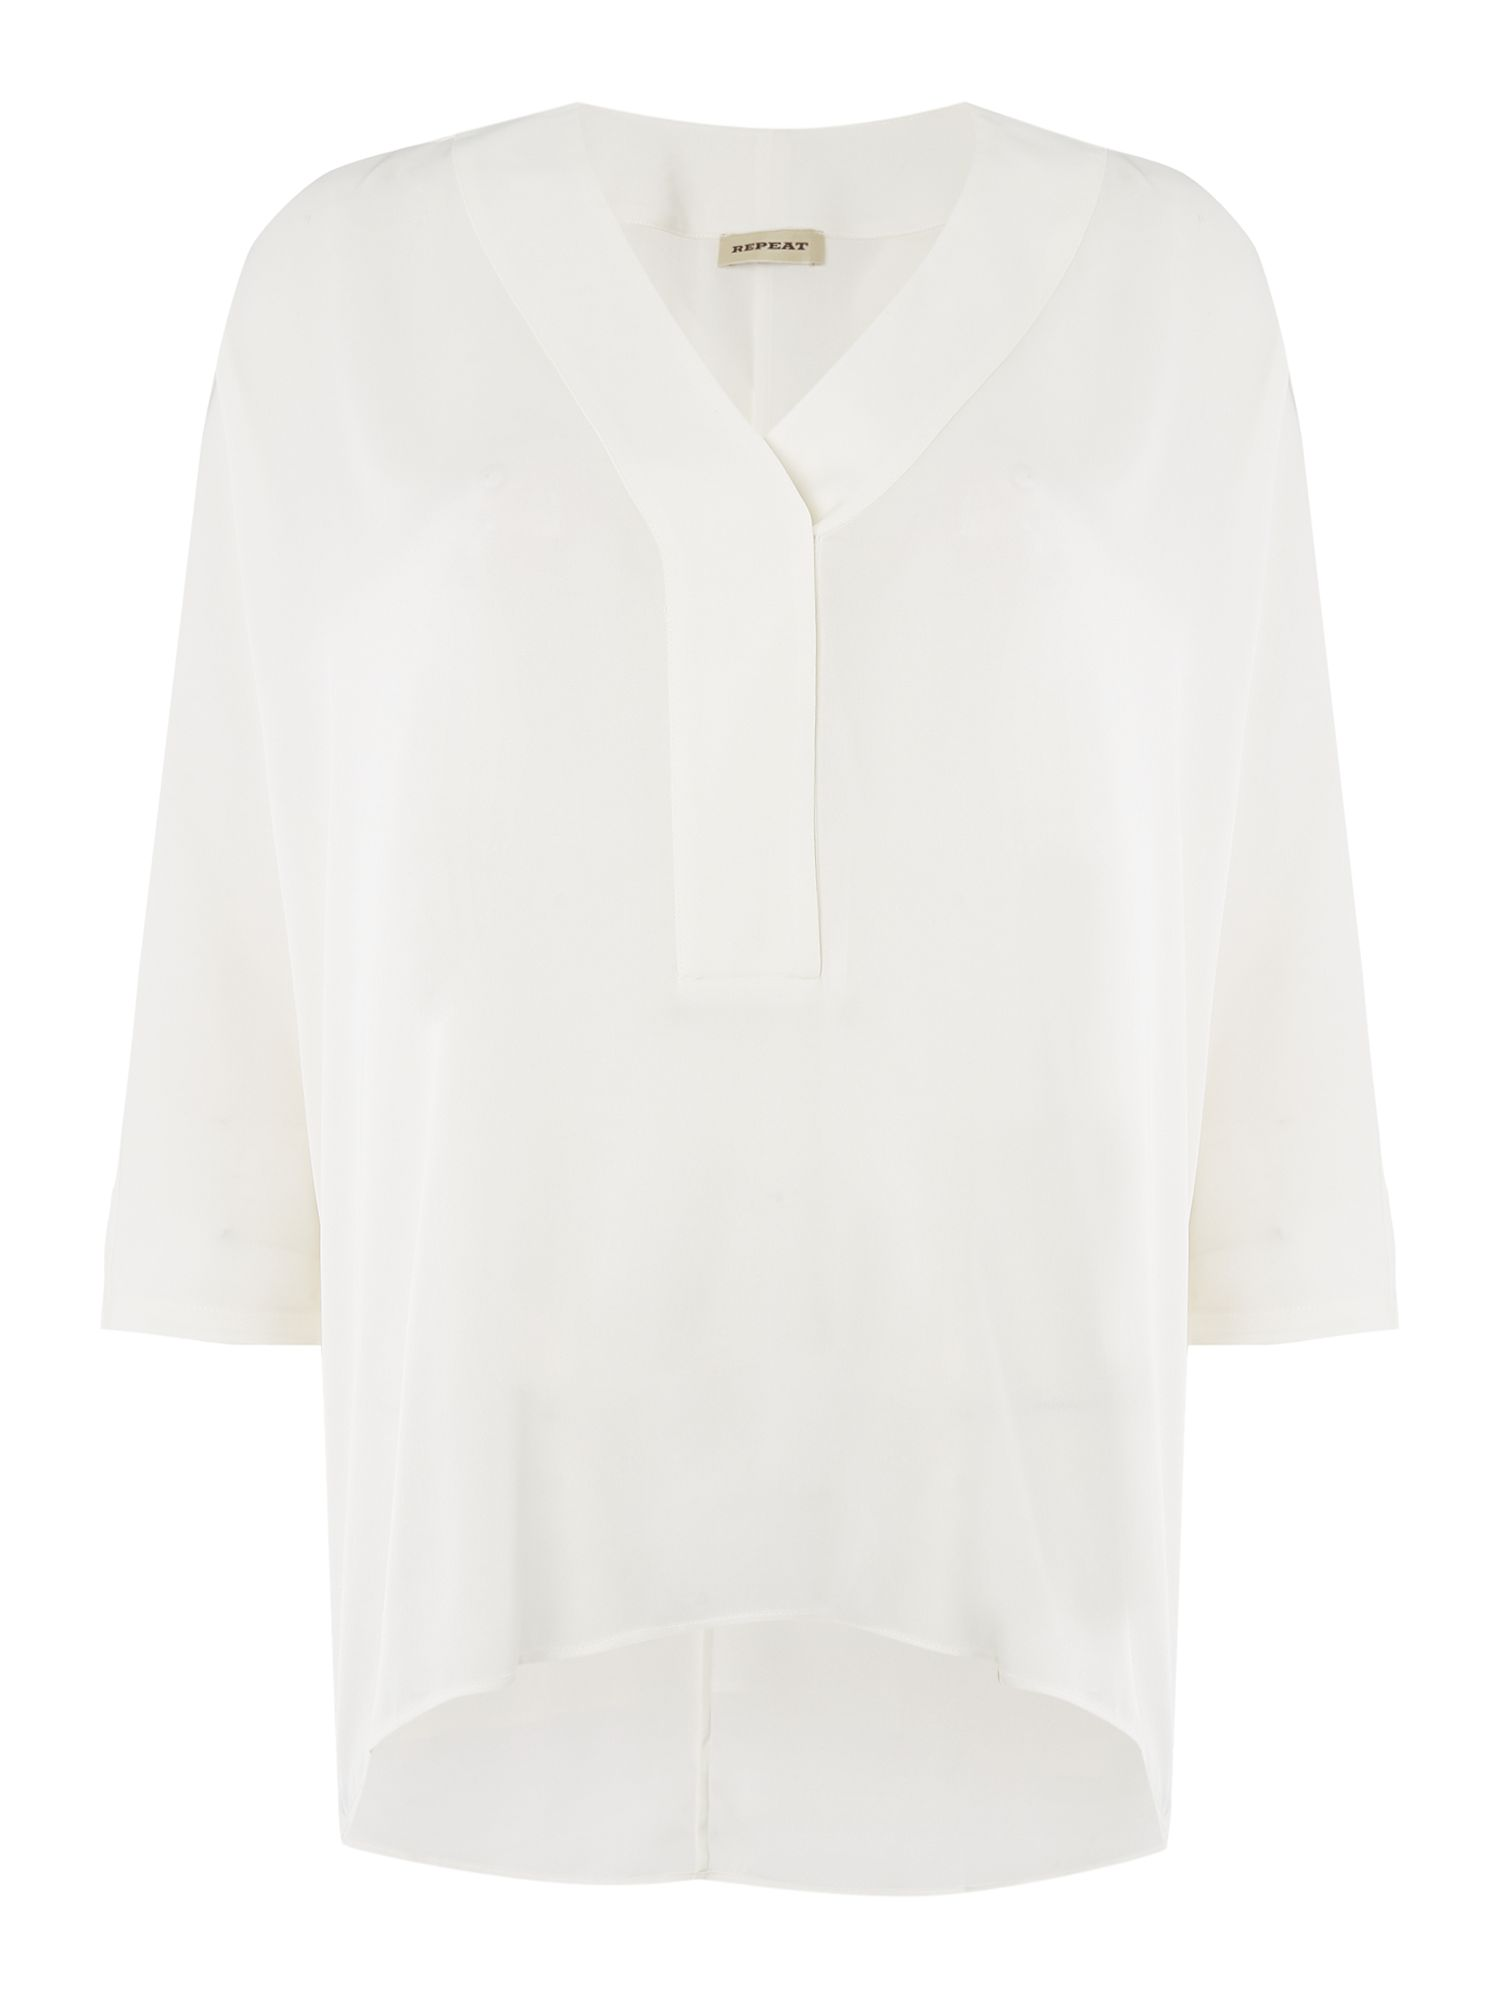 Repeat Cashmere Repeat Cashmere Oversized placket blouse, Cream